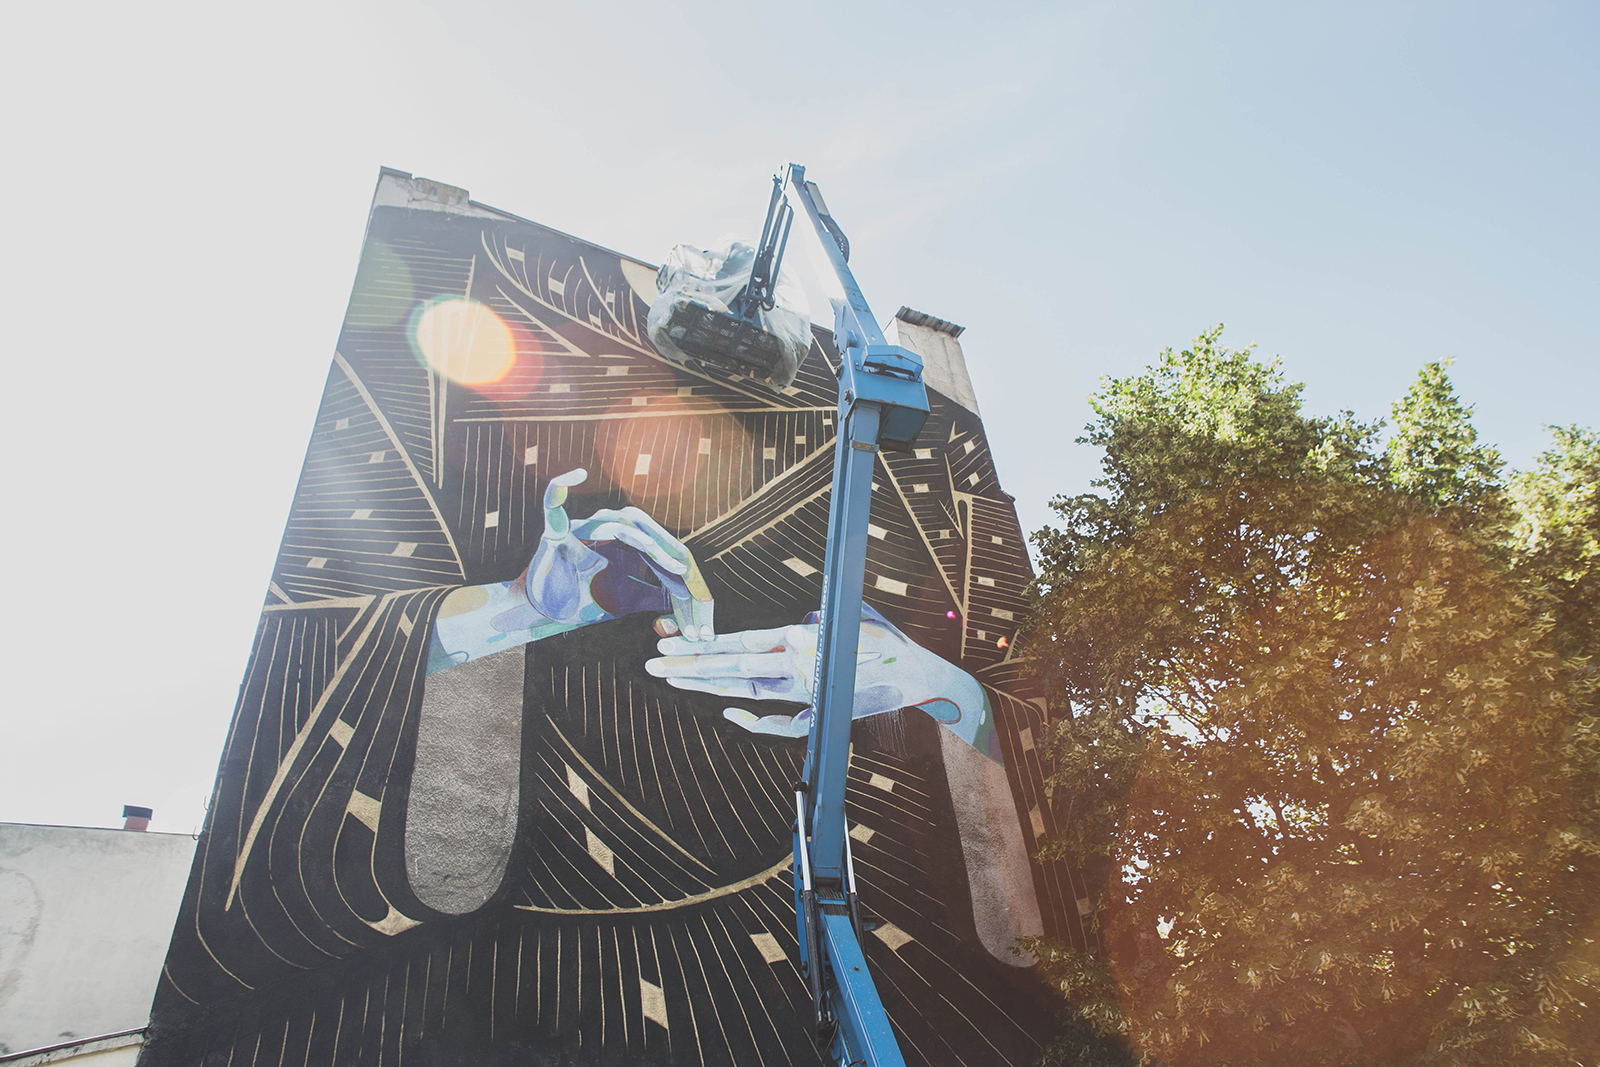 basik-new-mural-for-traffic-design-festival-2014-03